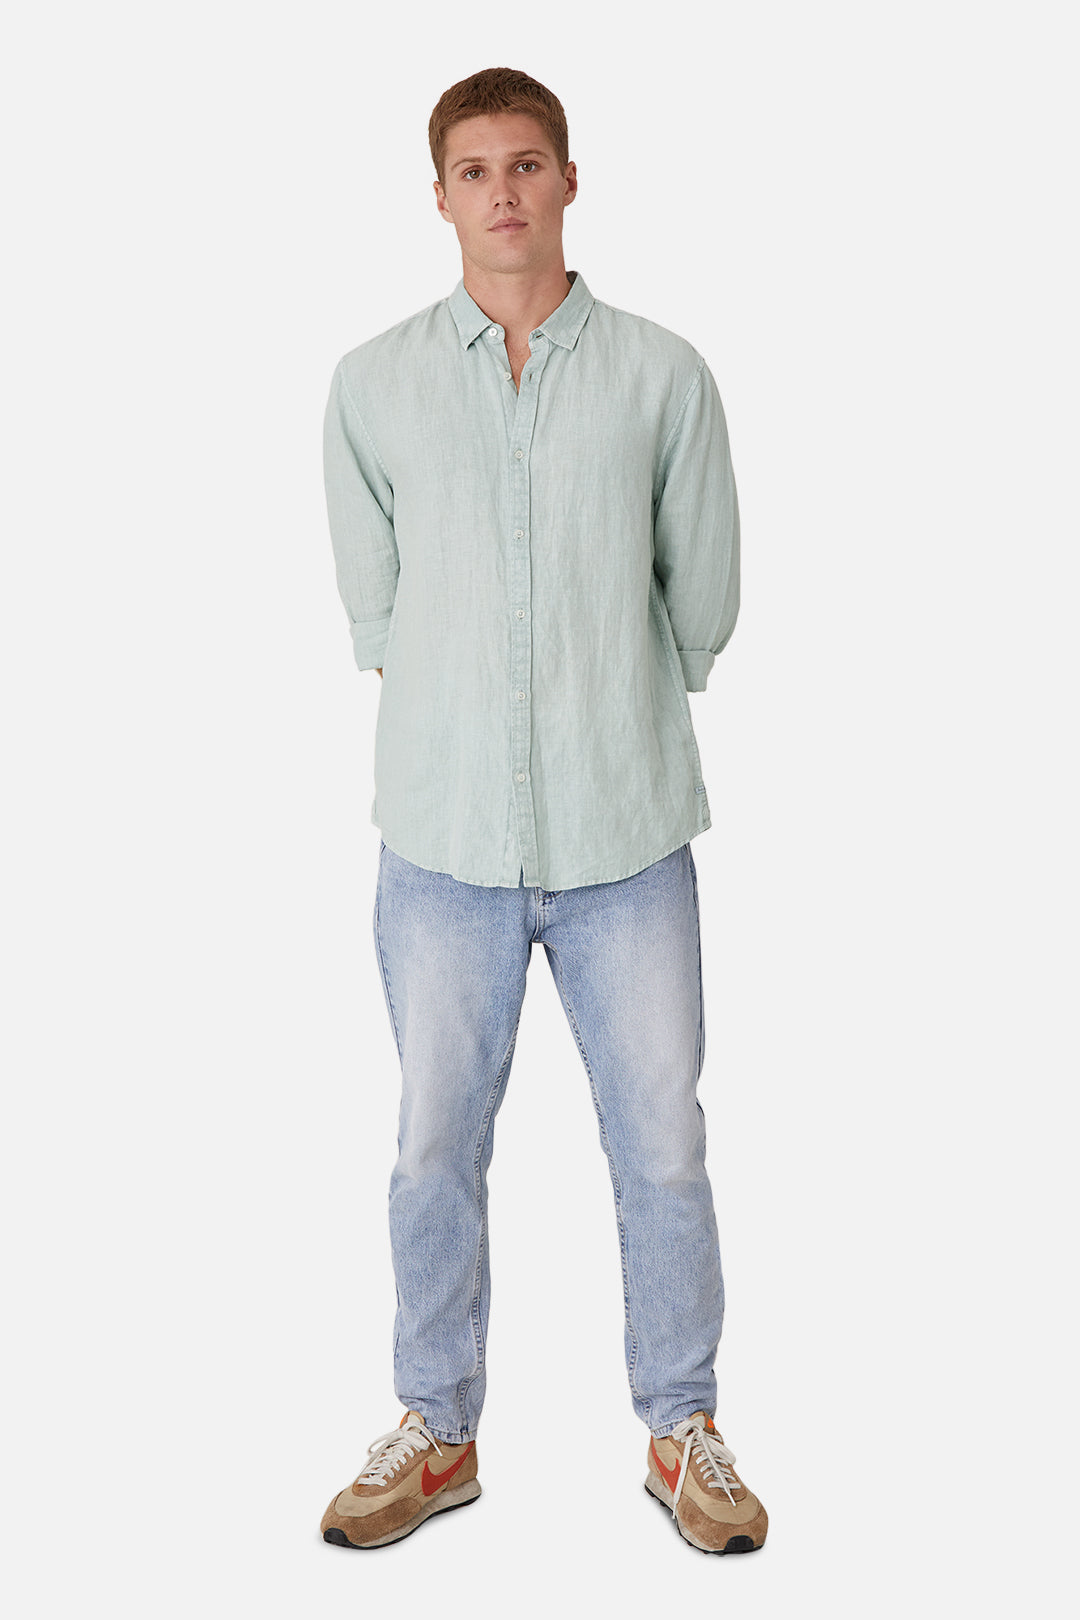 The Tennyson Linen L/S Shirt - Jade